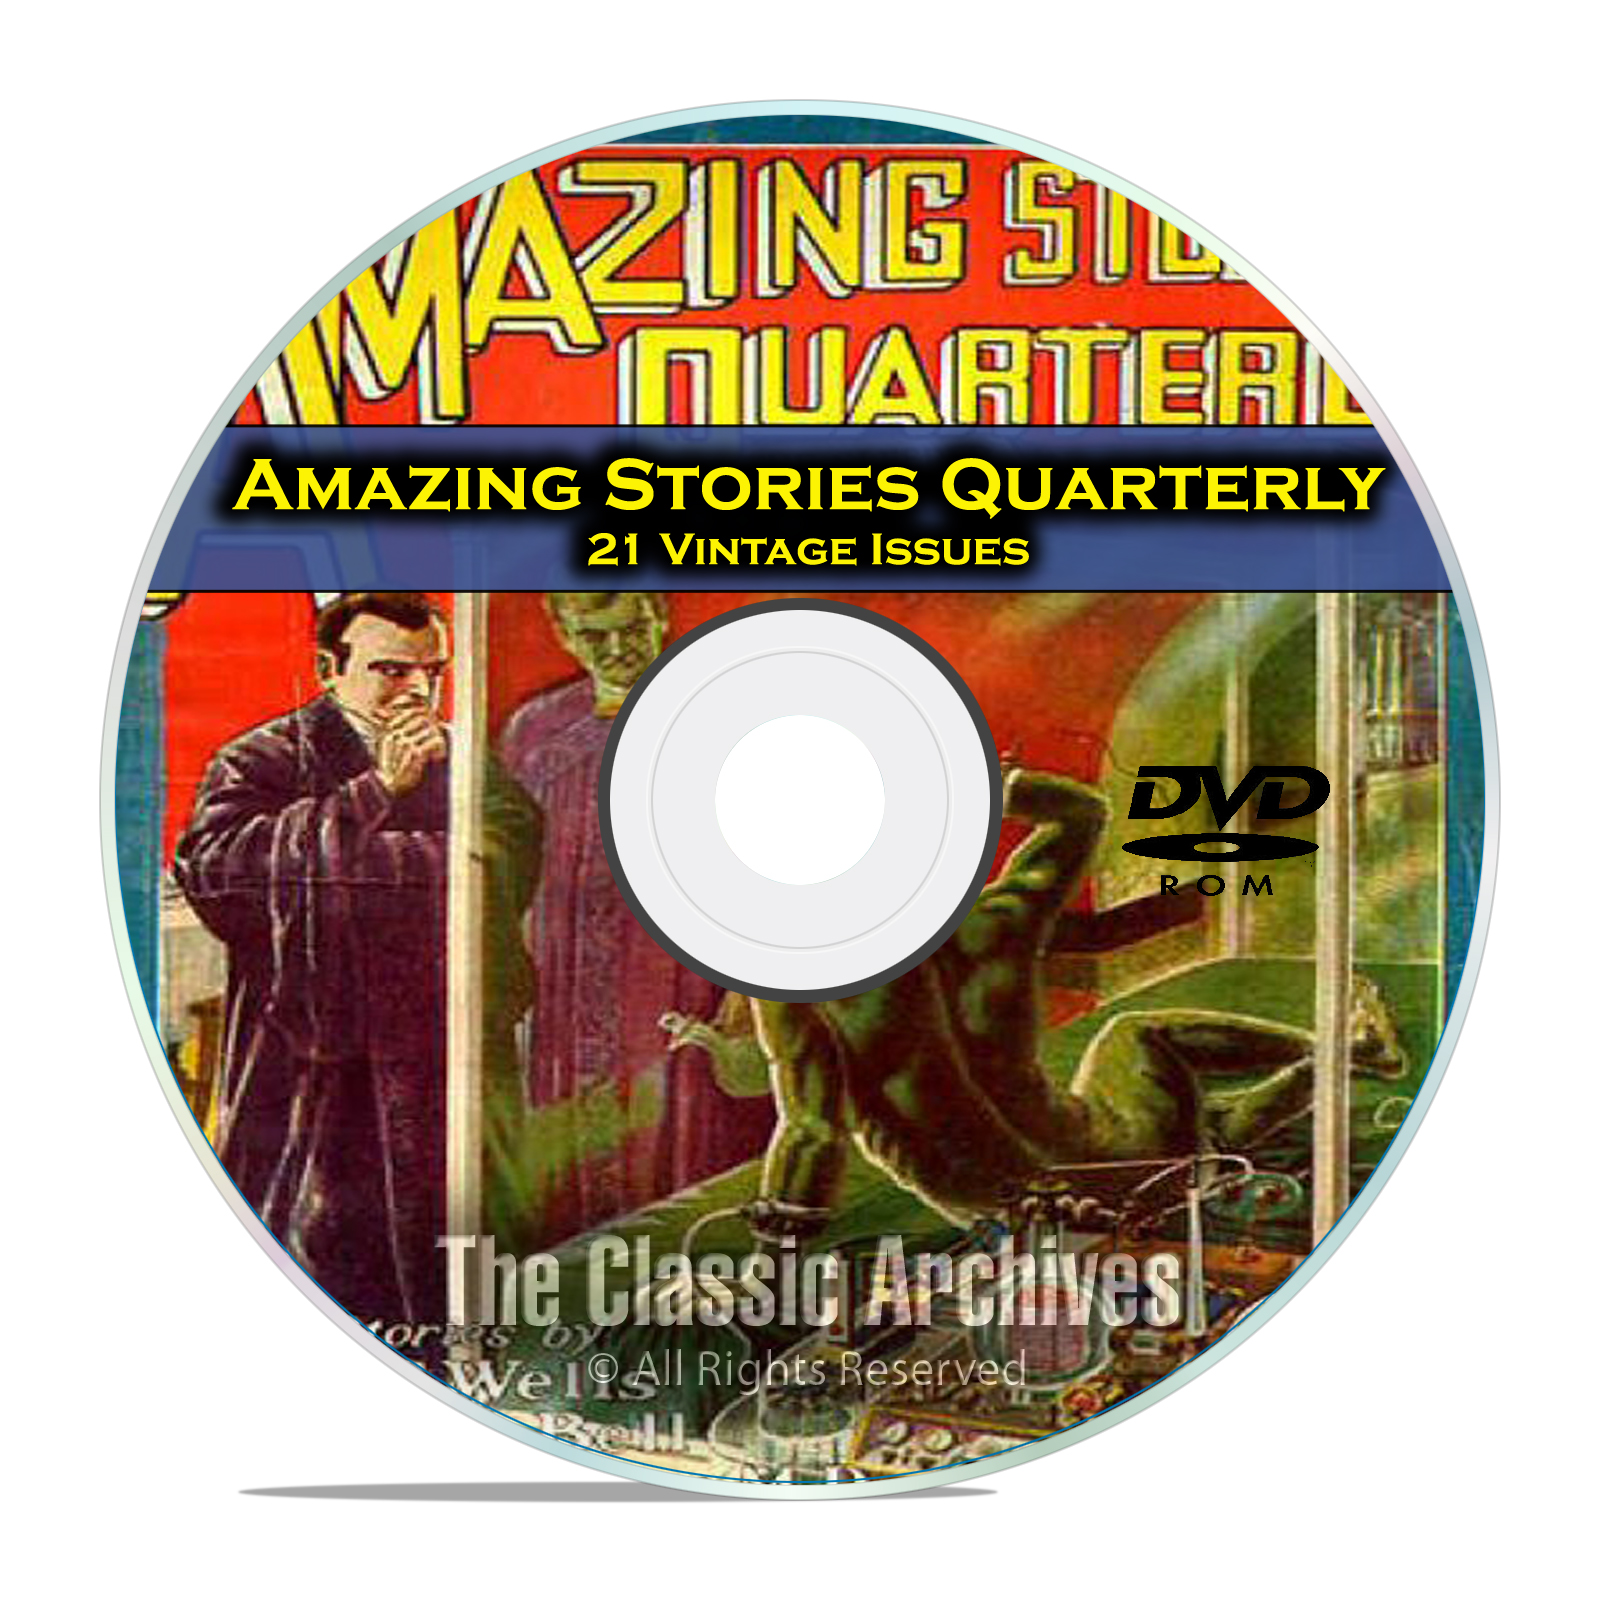 Amazing Stories Quarterly, 21 Vintage Pulp Magazines Golden Age Fiction DVD